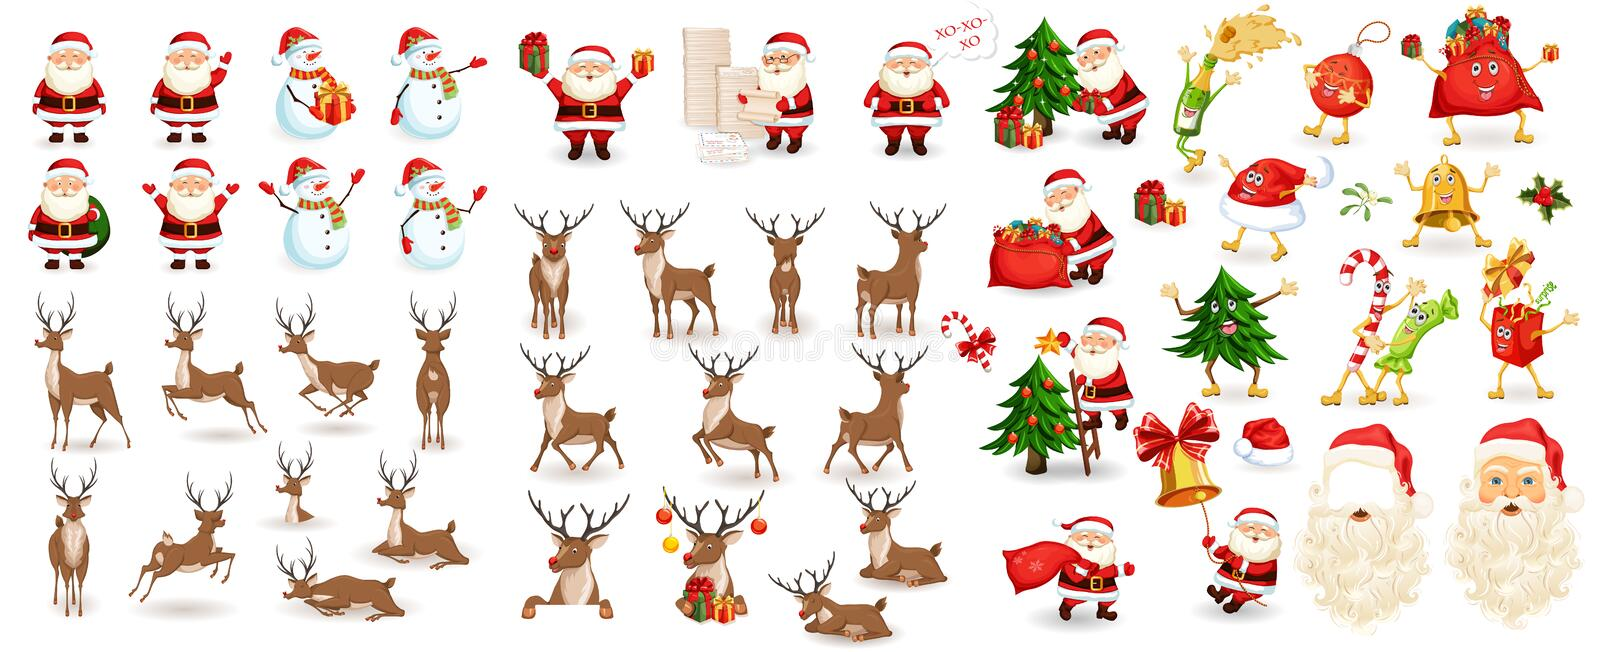 Big Christmas set. Santa Claus, reindeer, snowman, tree, bag with gifts, hat, sweets beard. Xmas decoration and elements. Photo props. Characters run, jump royalty free illustration